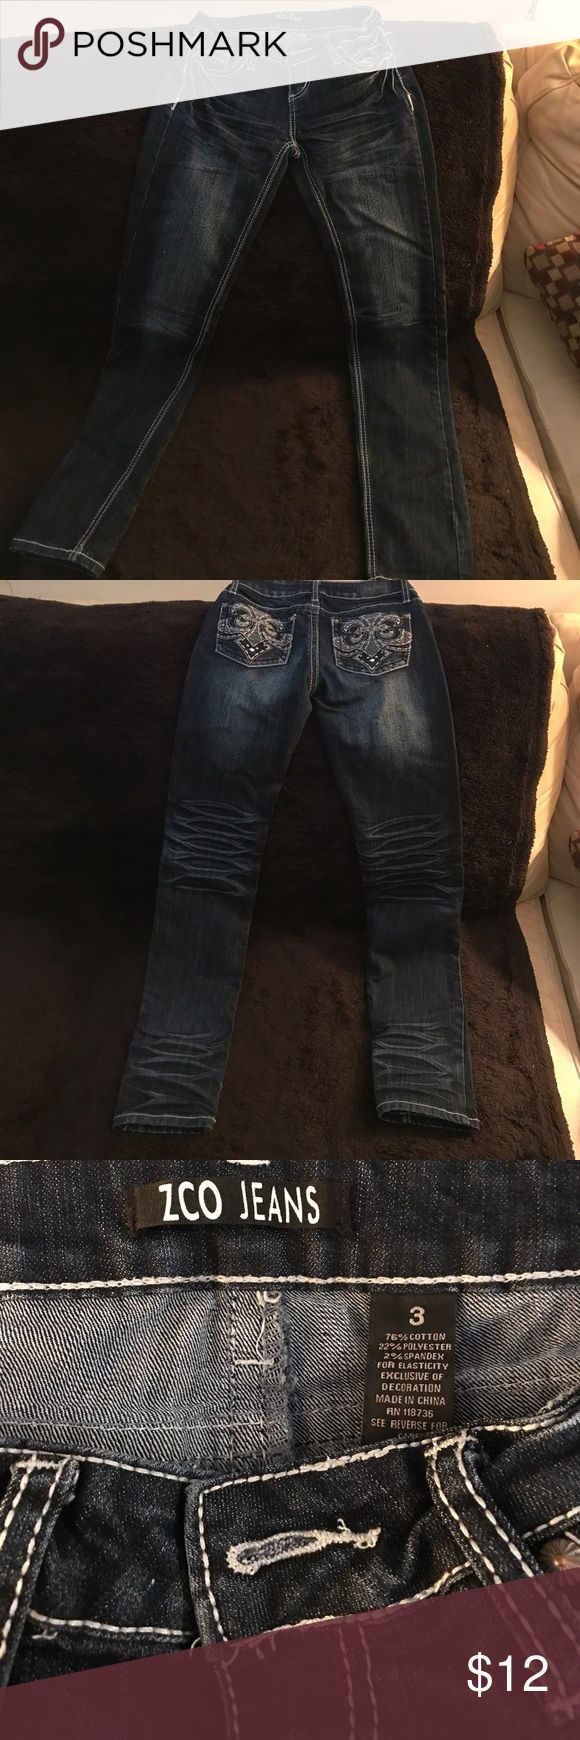 Zco jeans size 3 Juniors denim jeans size 3. They are in very good condition. ZCO Jeans Straight Leg